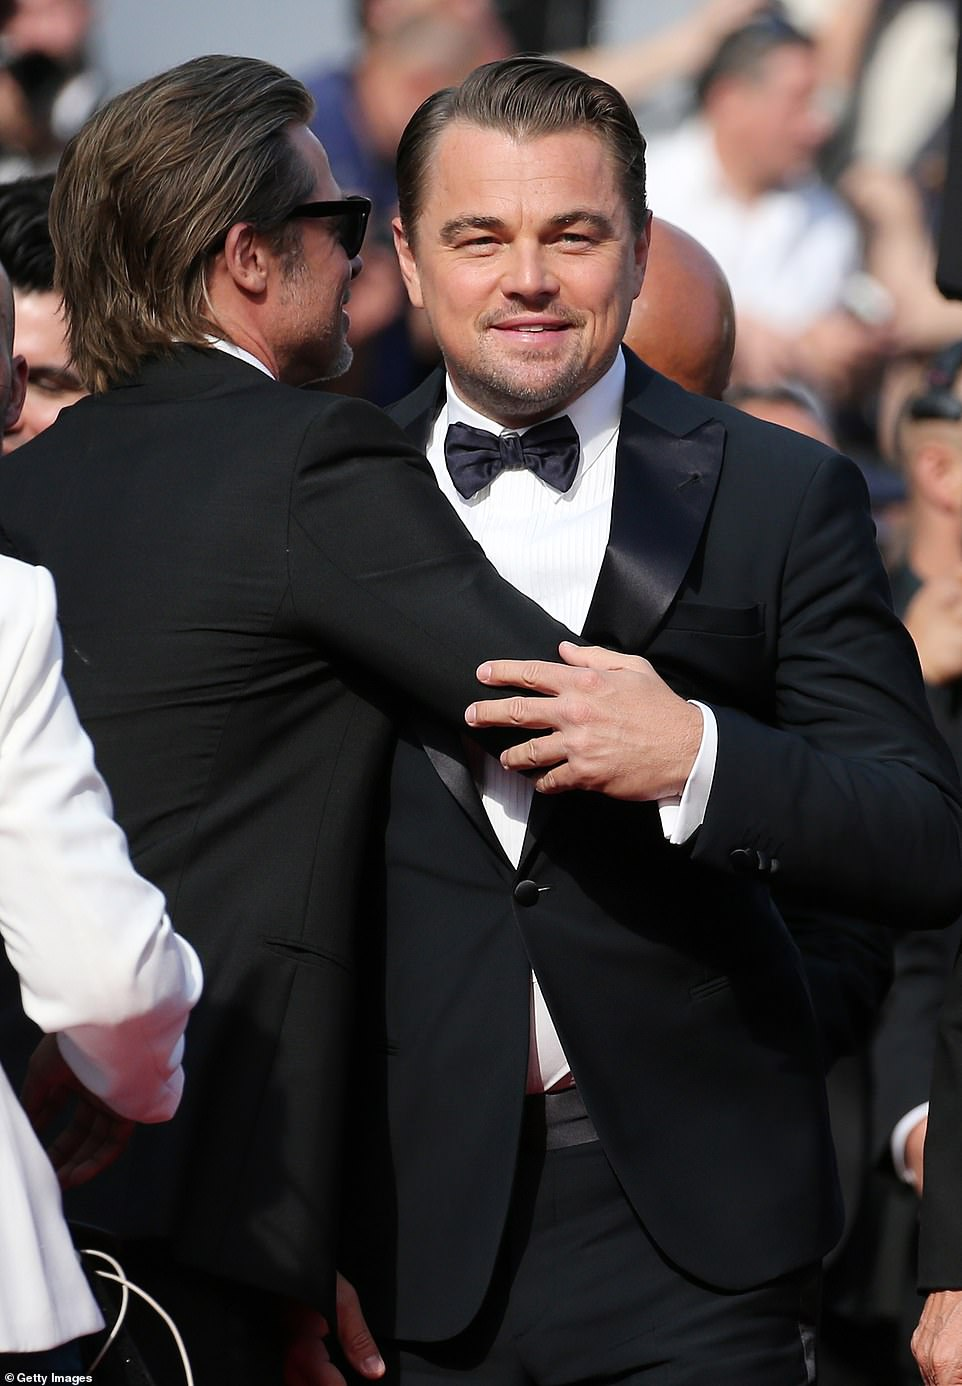 Pals:Leonardo DiCaprio and Brad Pitt delighted fans as they shared a friendly embrace at the star-studded premiere for Once Upon A Time In Hollywood at the Cannes Film Festival on Tuesday